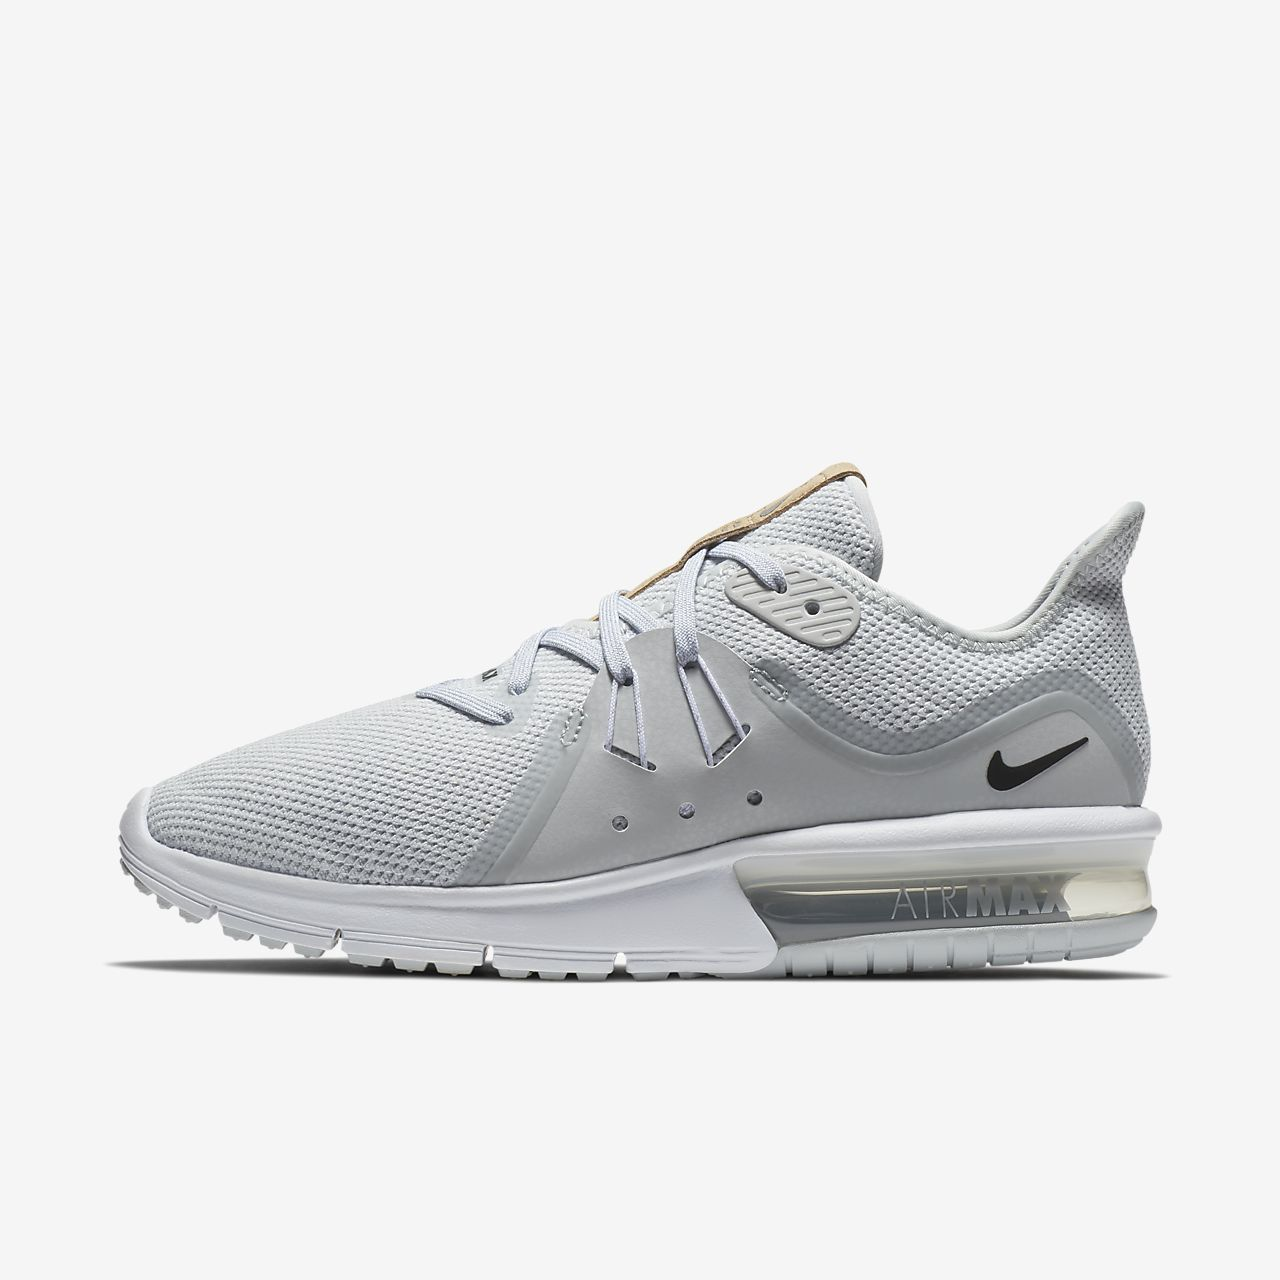 76c2233f21fe Nike Air Max Sequent 3 Women s Shoe. Nike.com